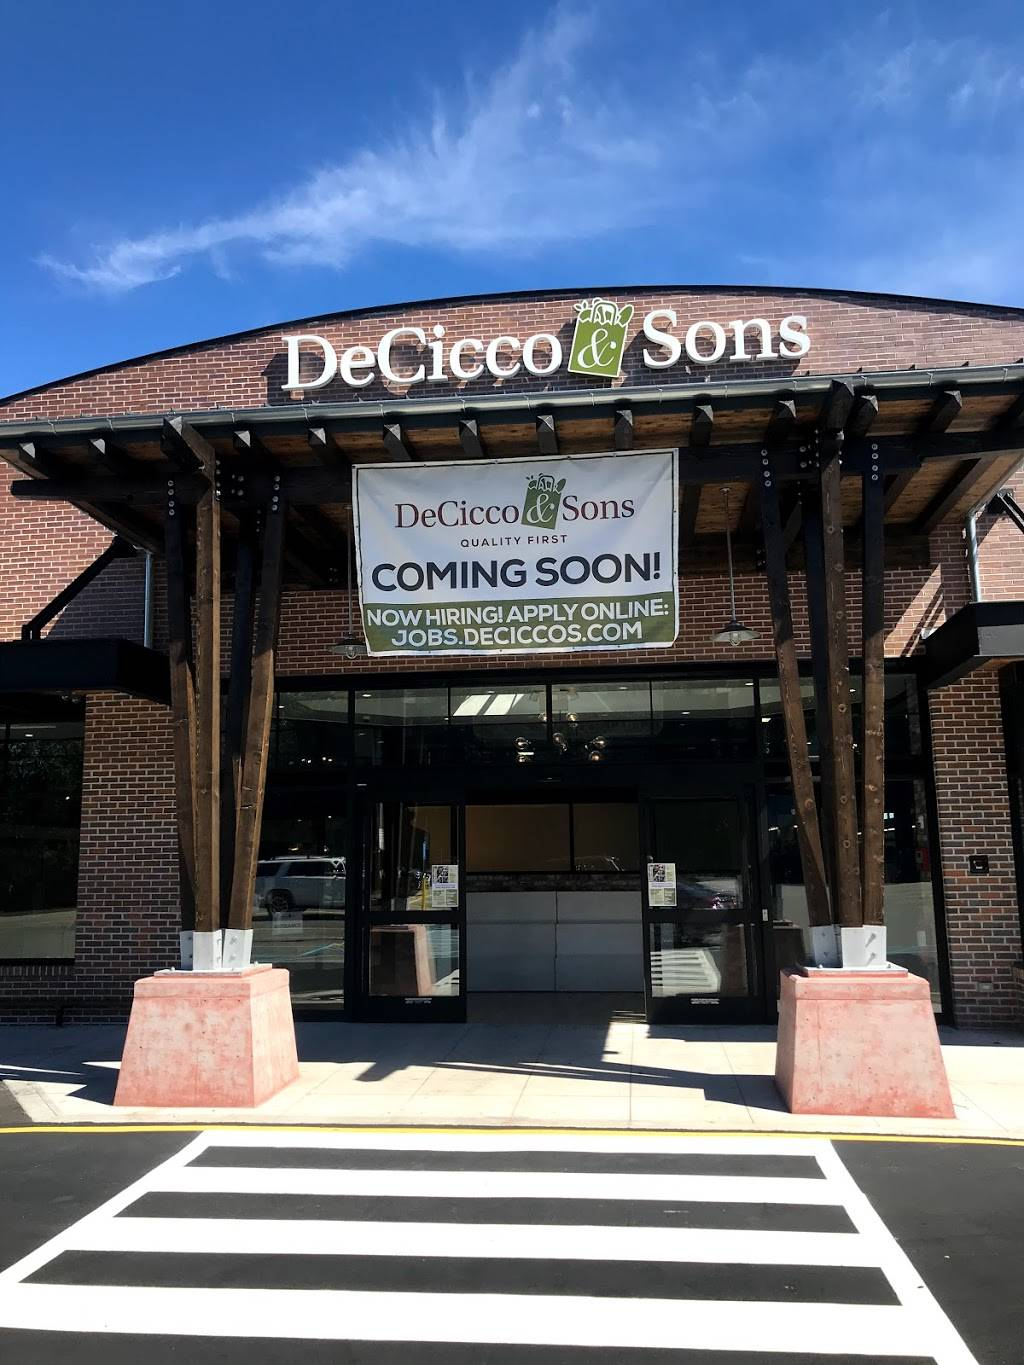 DeCicco & Sons Eastchester   bakery   777 White Plains Rd, Eastchester, NY 10583, USA   9147043220 OR +1 914-704-3220